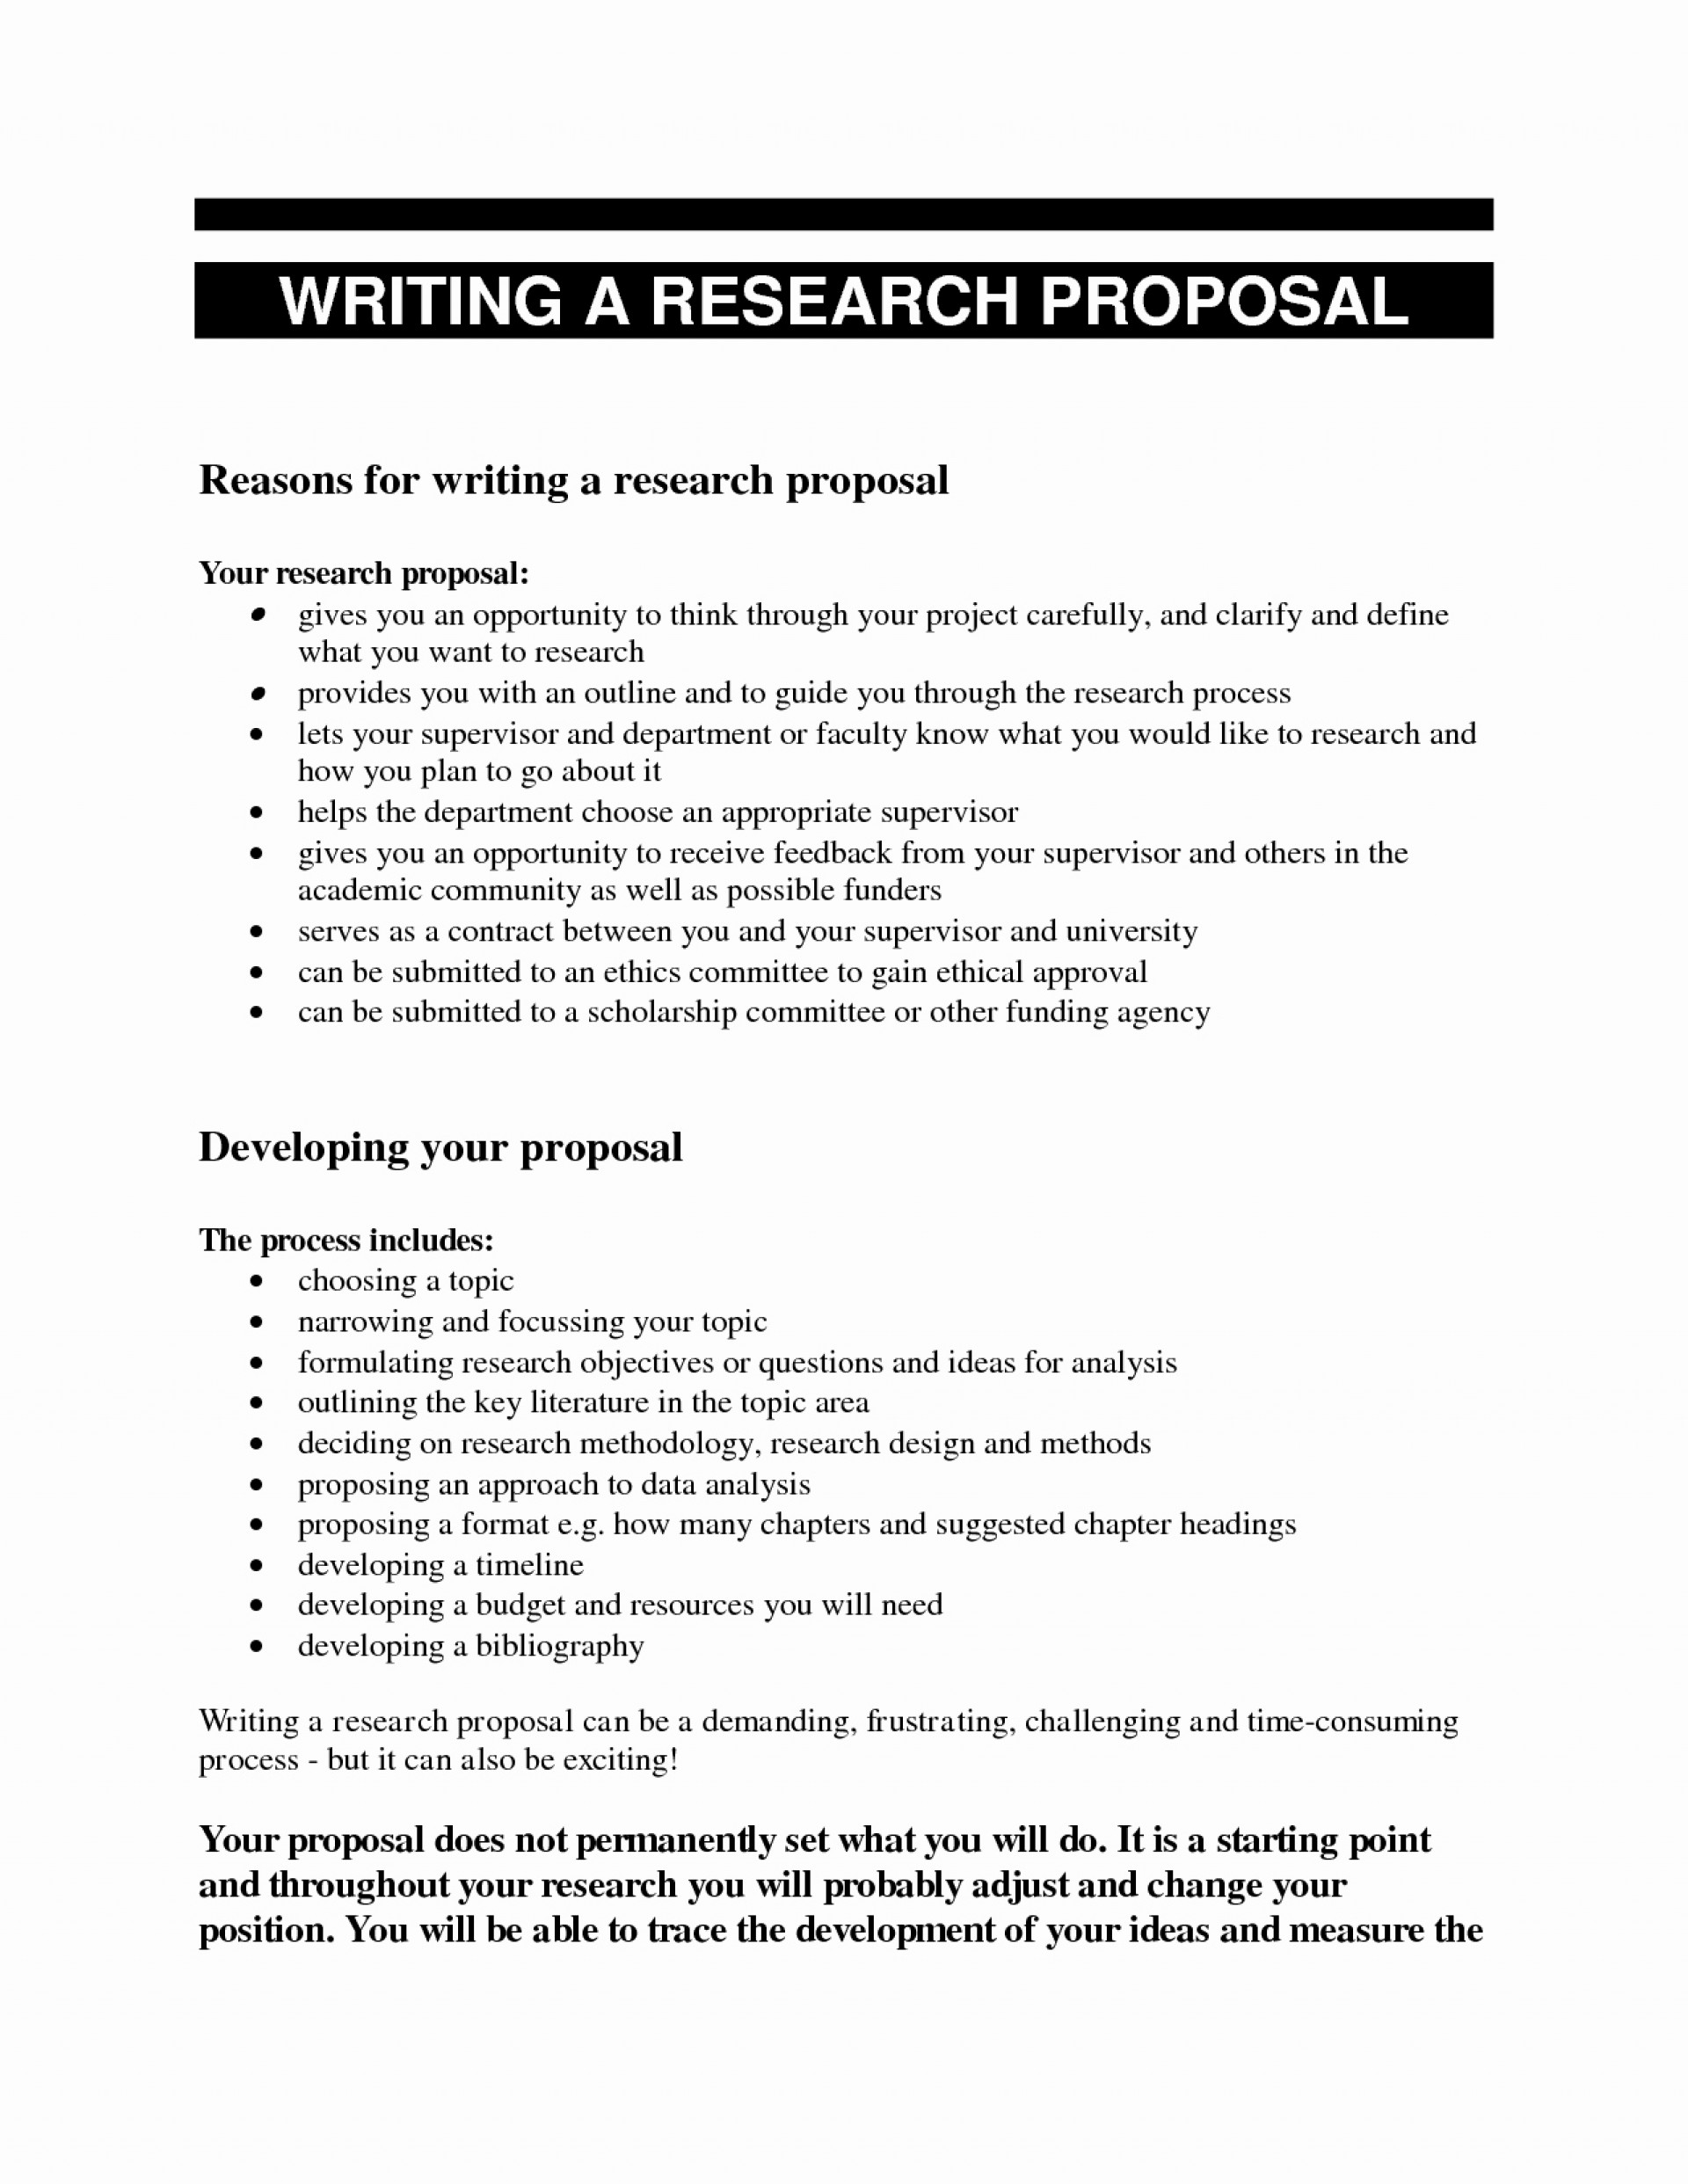 016 How To Write Research Paper Proposal Sample Essay Template For Topics College Students Amazing A In Apa Format Mla 1920